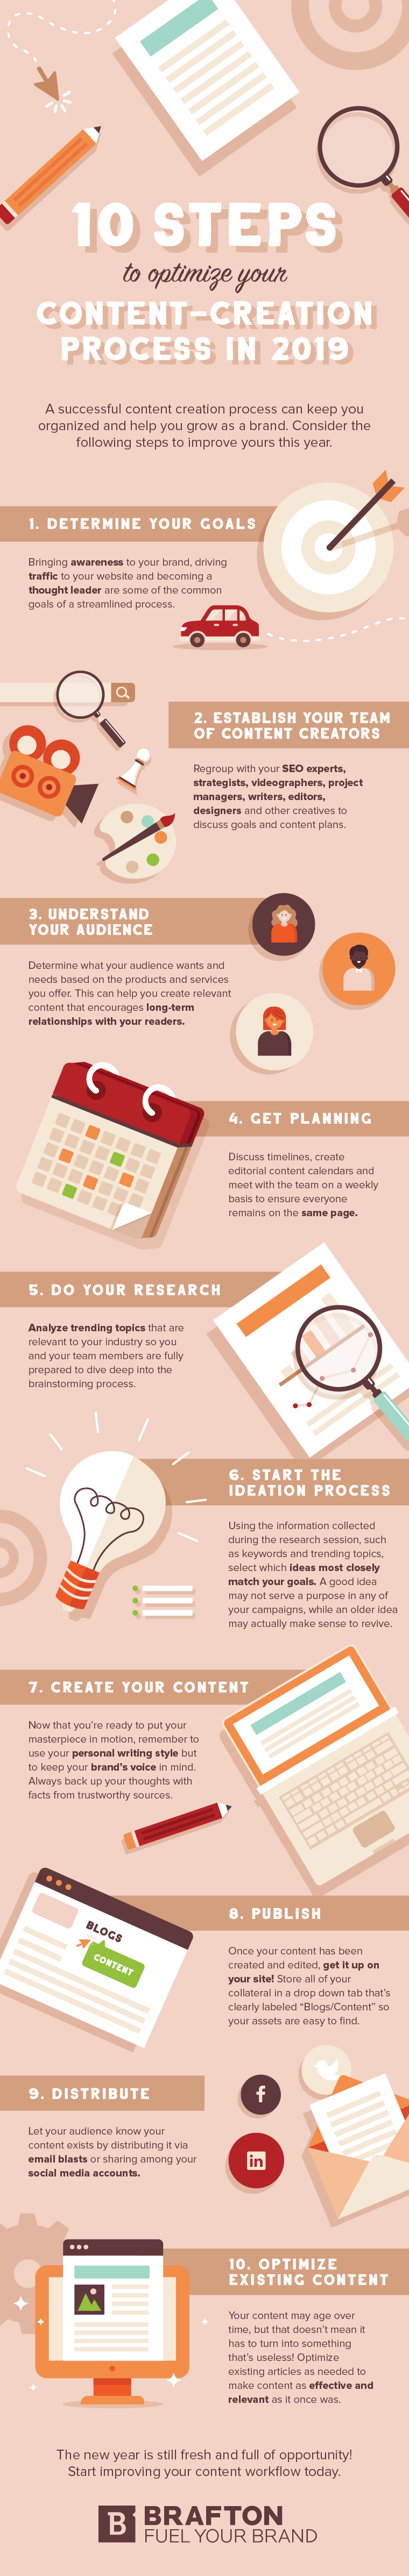 content creation process infographic